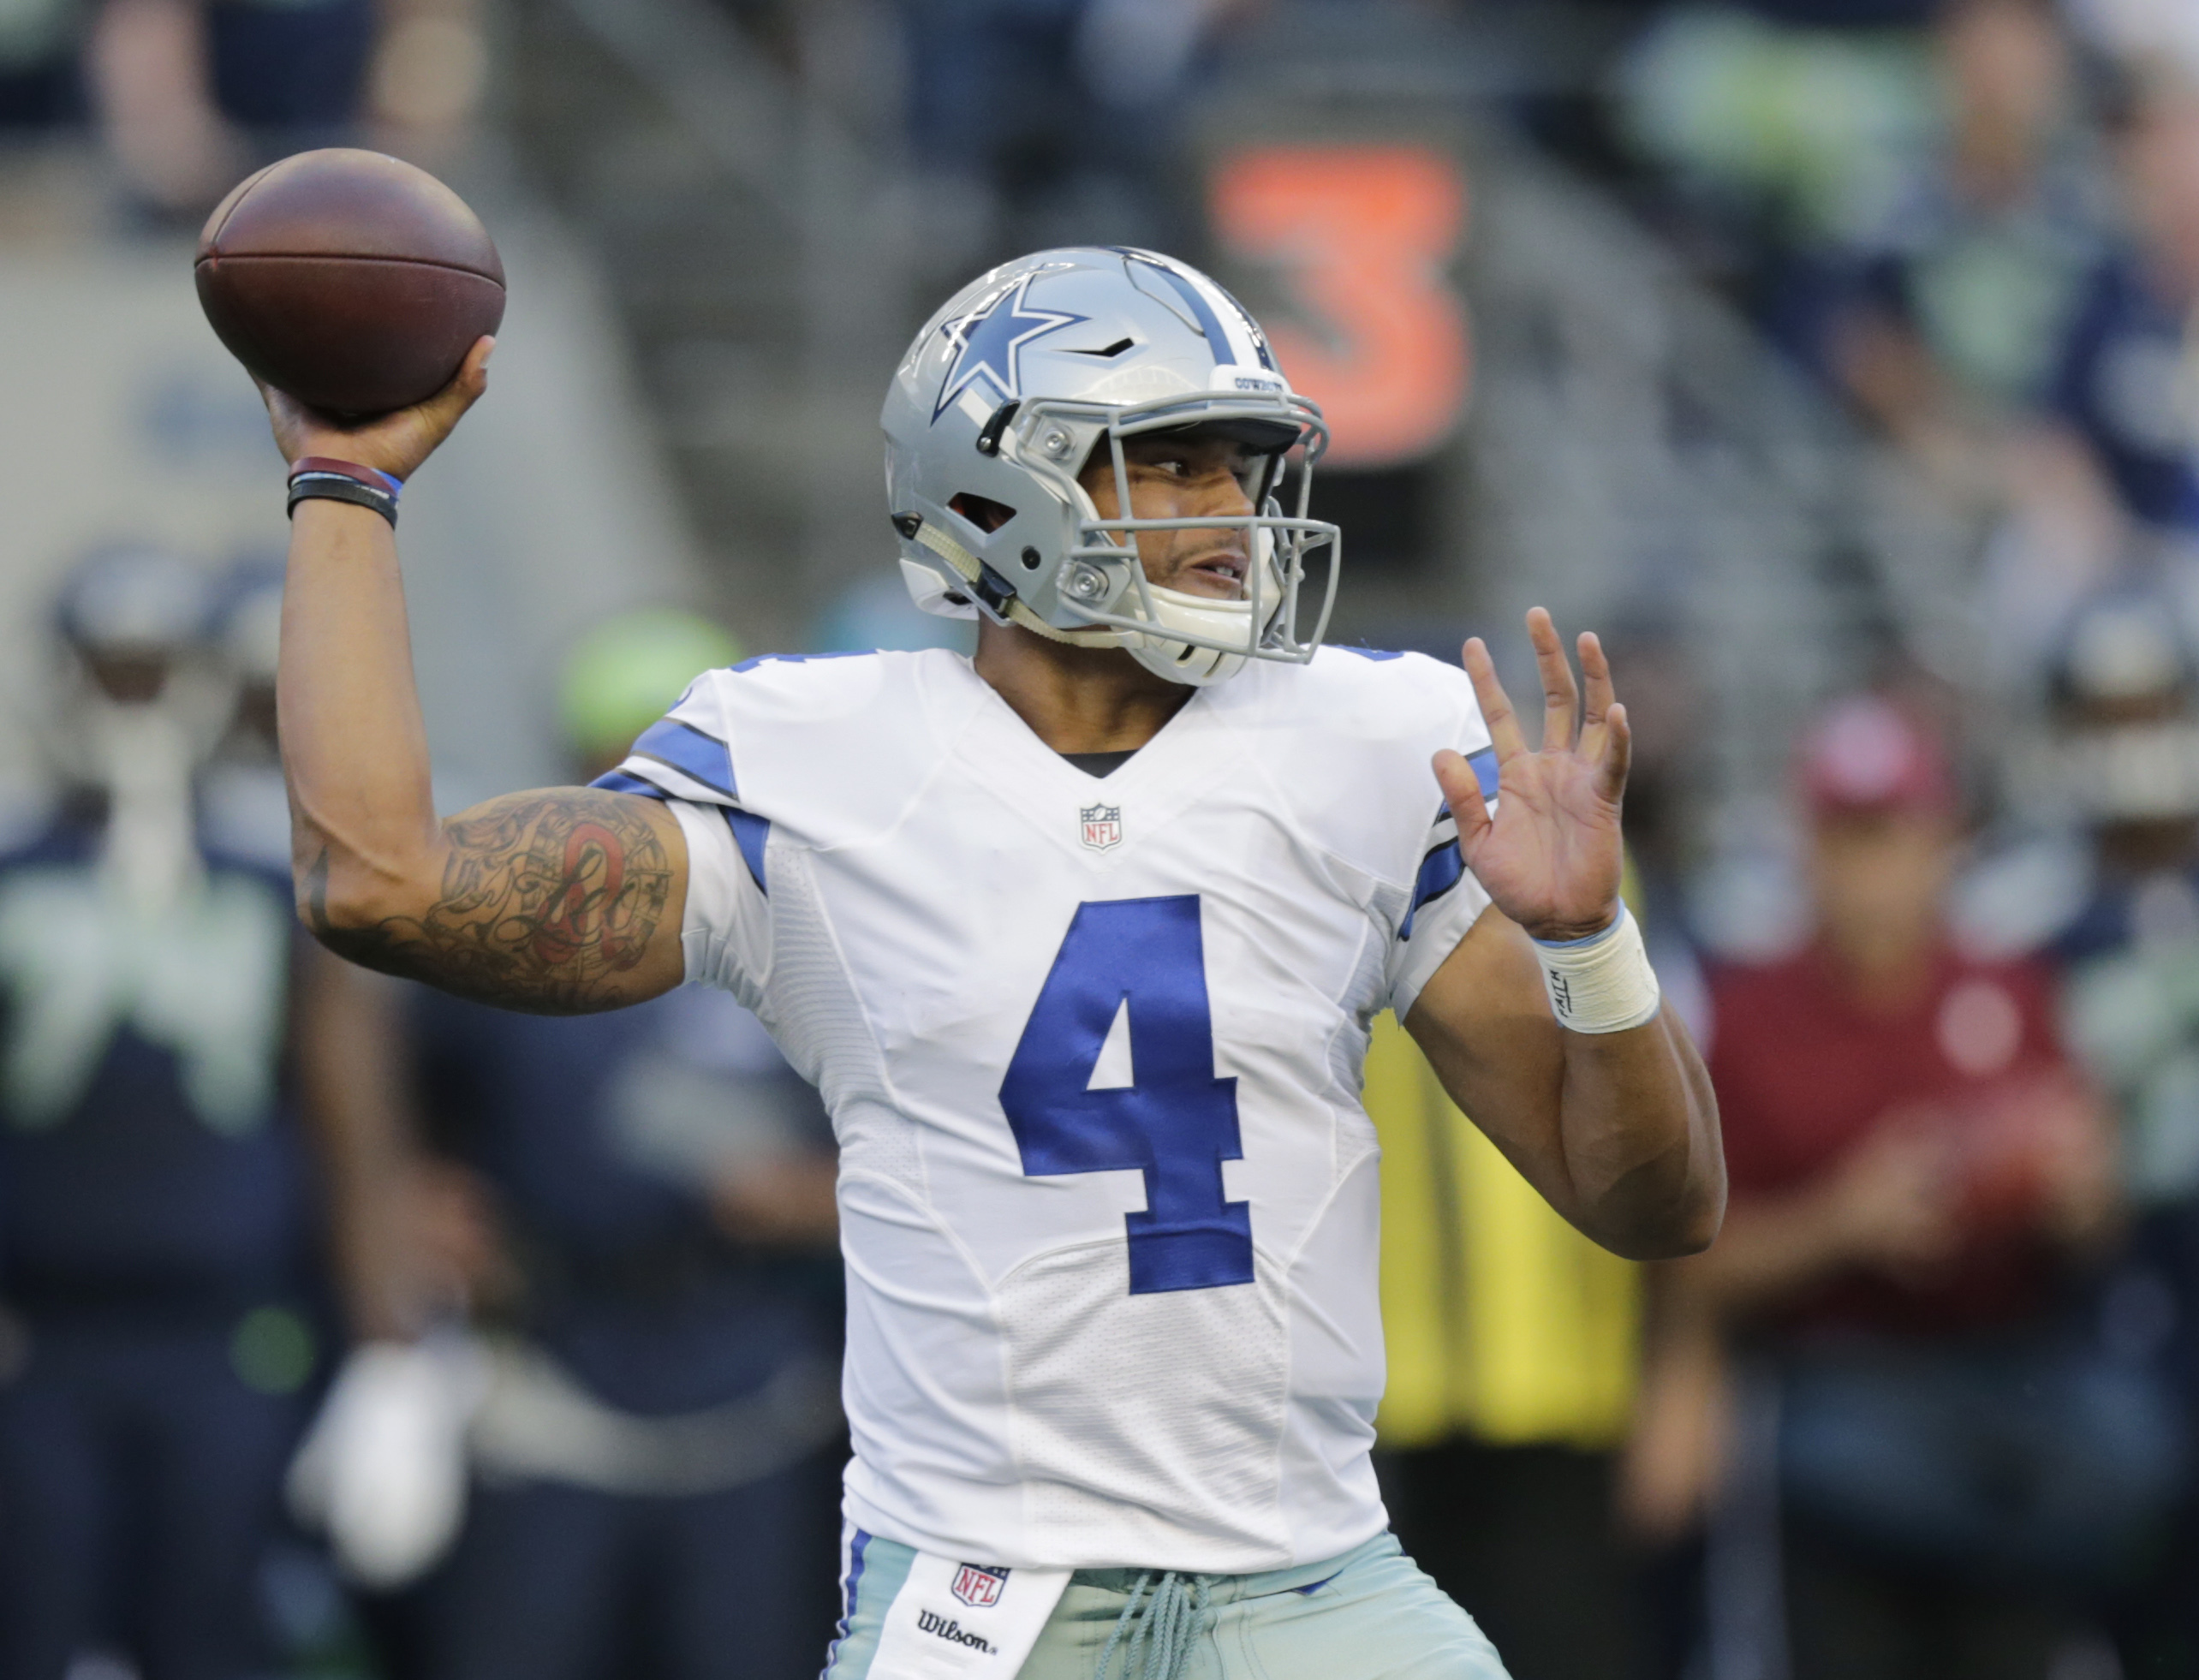 FILE - This Aug. 25, 2016 file photo shows Dallas Cowboys quarterback Dak Prescott passing against the Seattle Seahawks during the first half of a preseason NFL football game in Seattle. Prescott grew up rooting for the Dallas Cowboys in Louisiana and sud